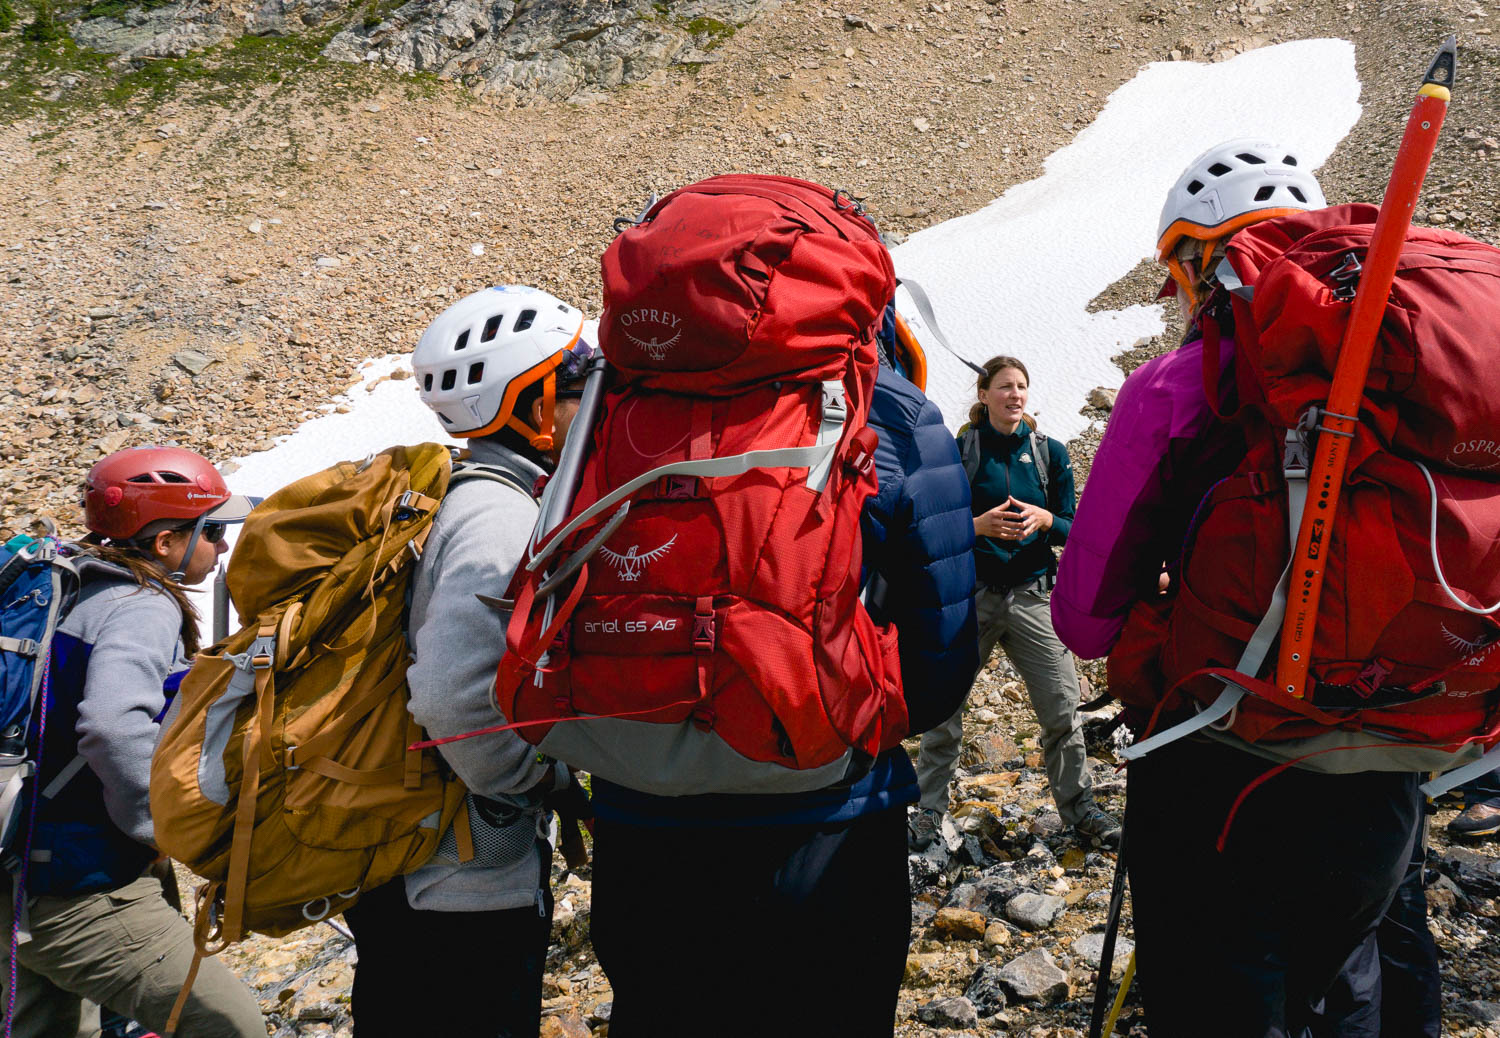 Natalie Stafl, of Parks Canada, tells the girls all about pikas and the extensive research that she has done.